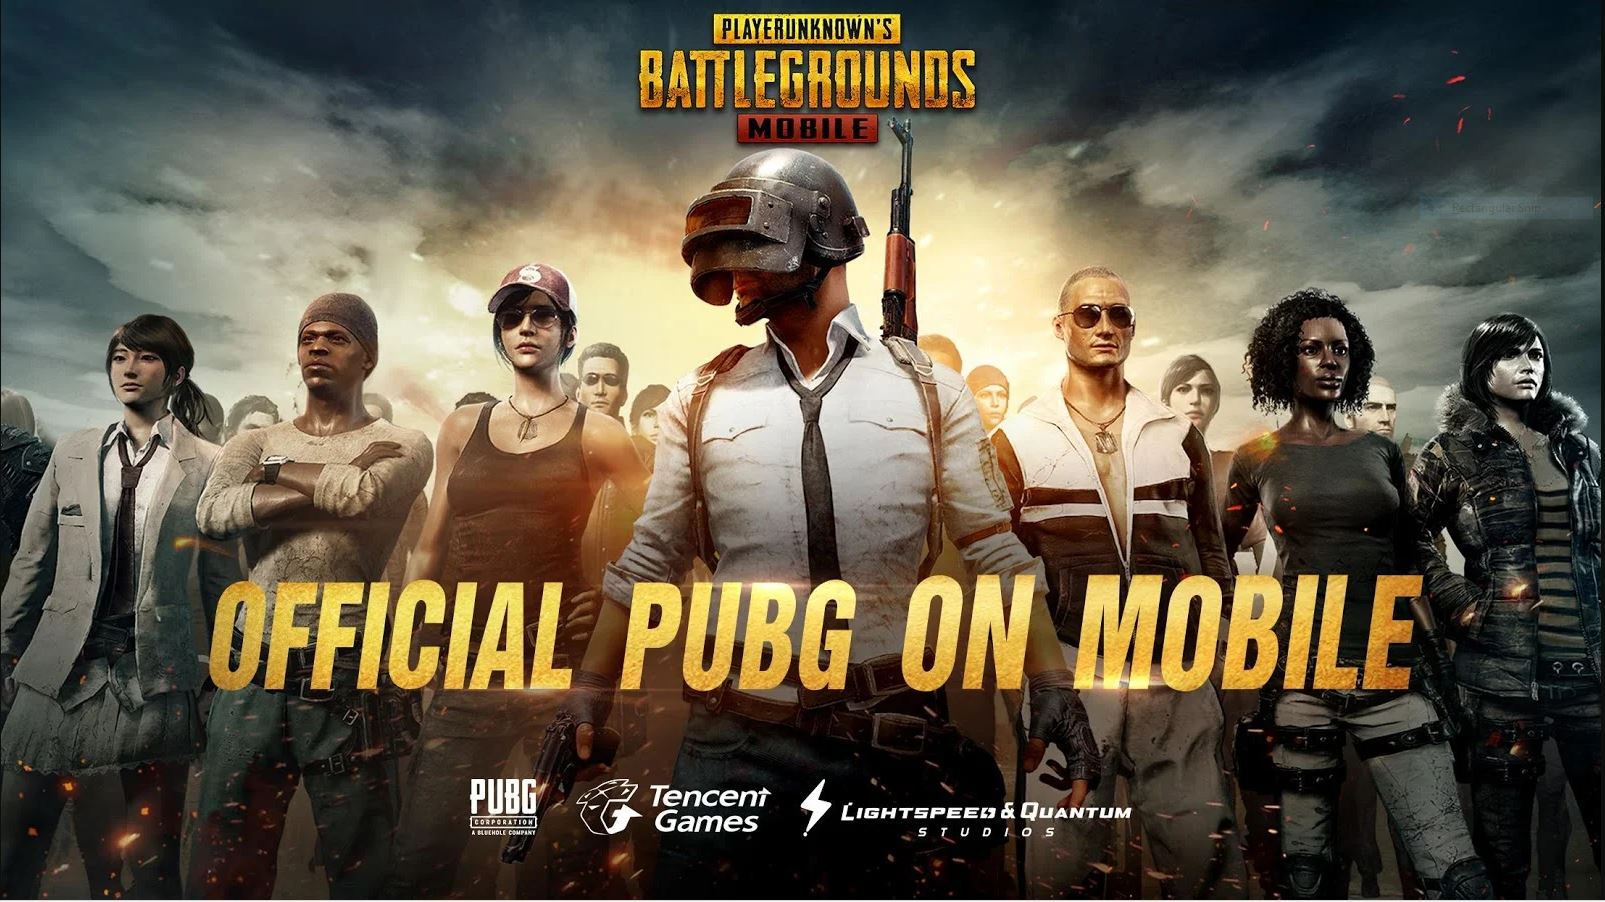 PUBG_Mobile_official